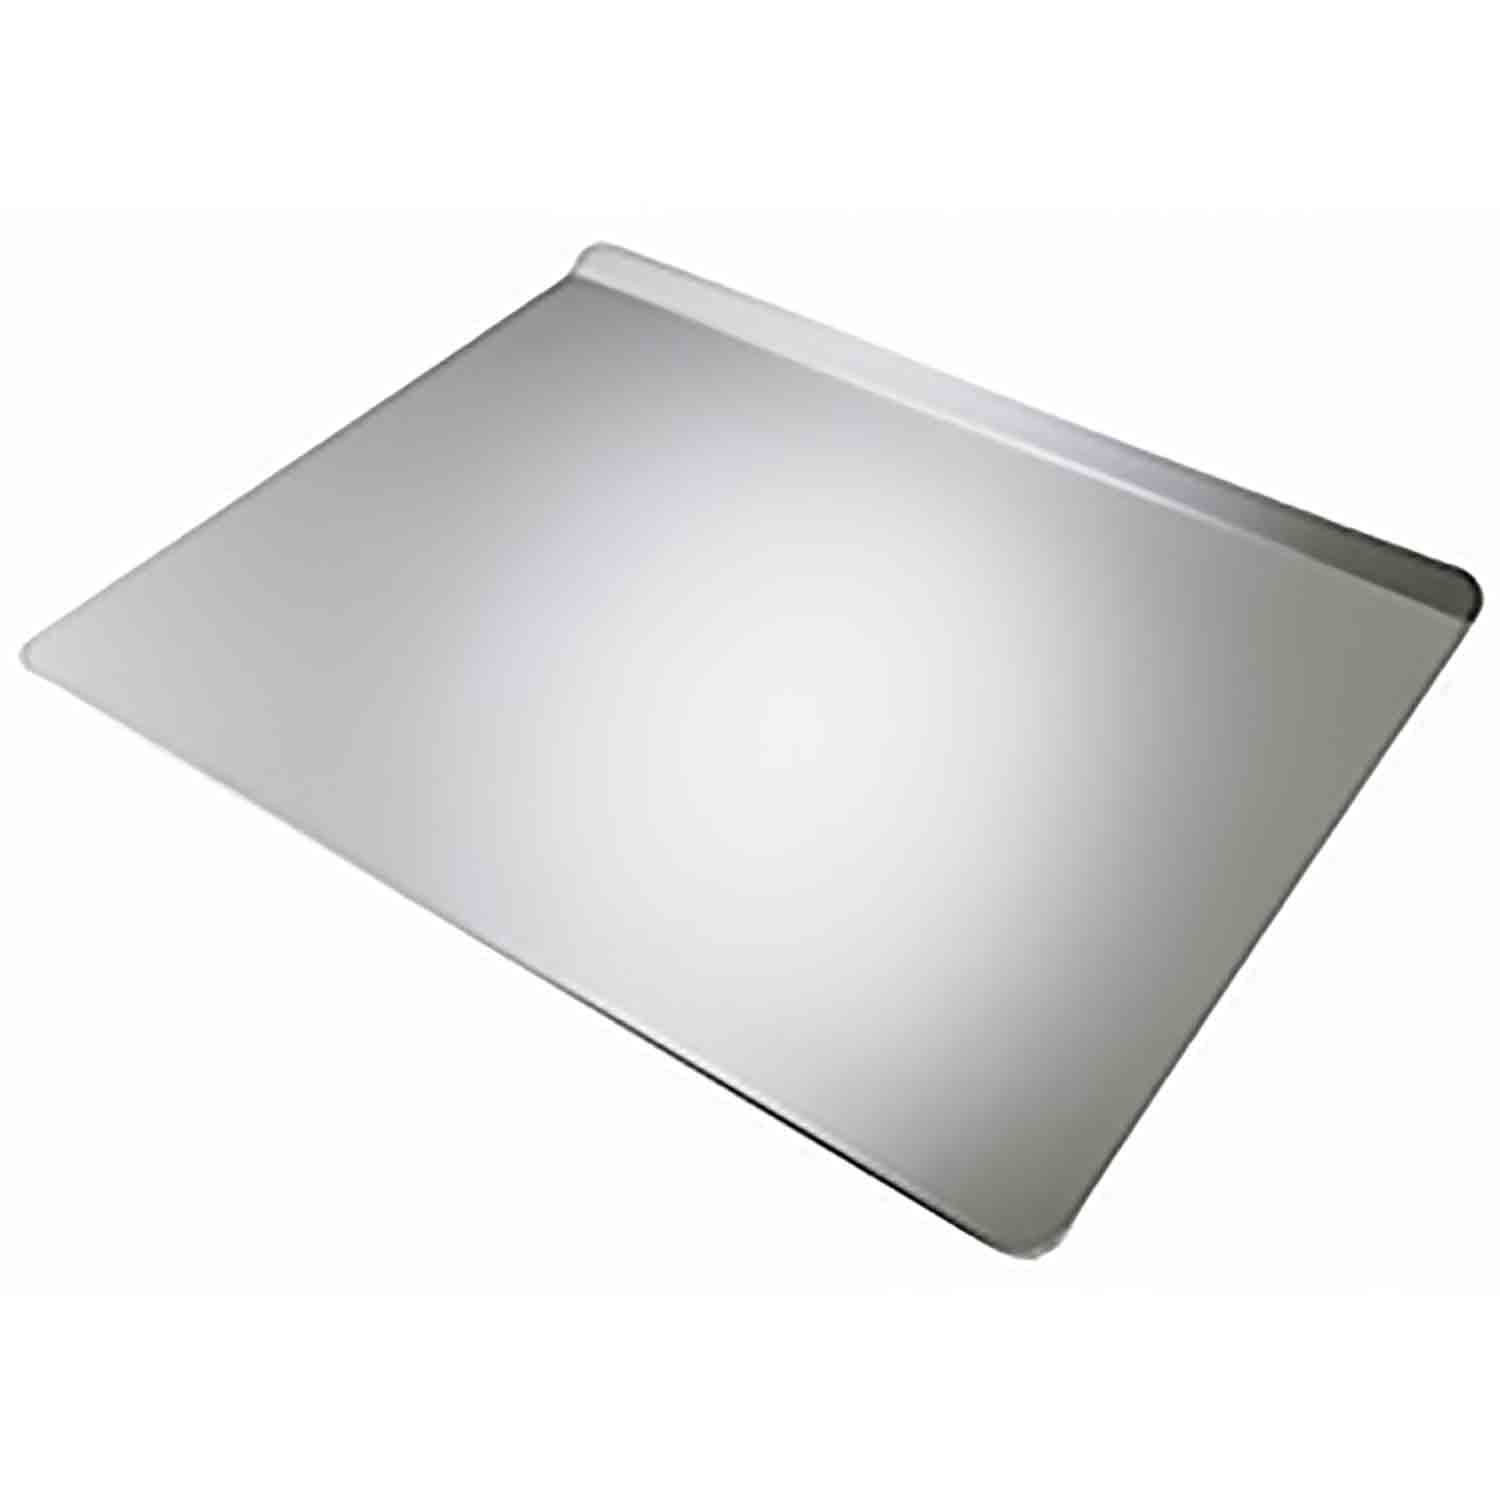 "14 x 16"" Insulated Cookie Sheet"